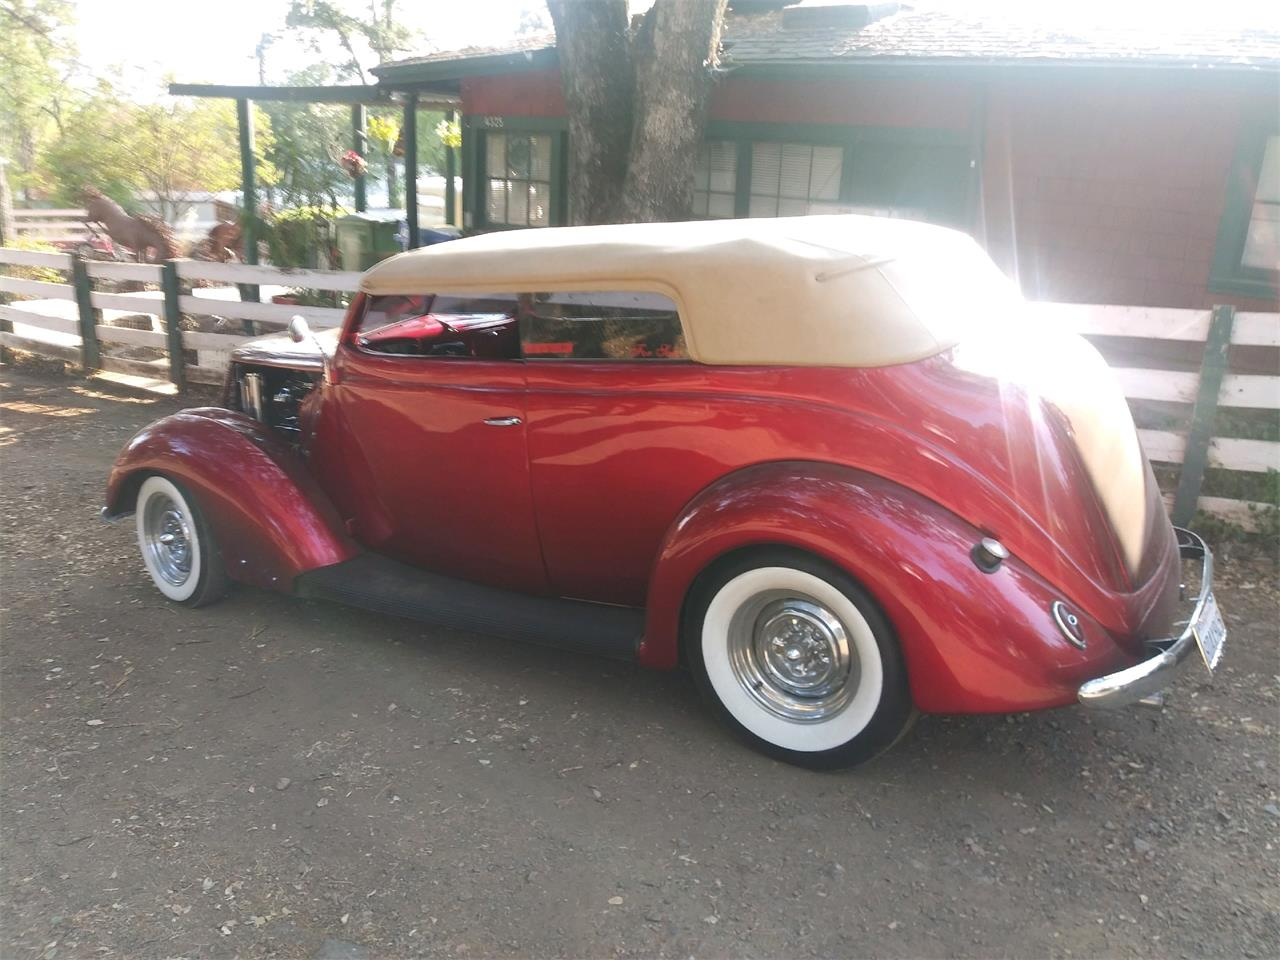 Large Picture of '37 Ford Roadster located in Clearlake California - $18,000.00 - OFNP